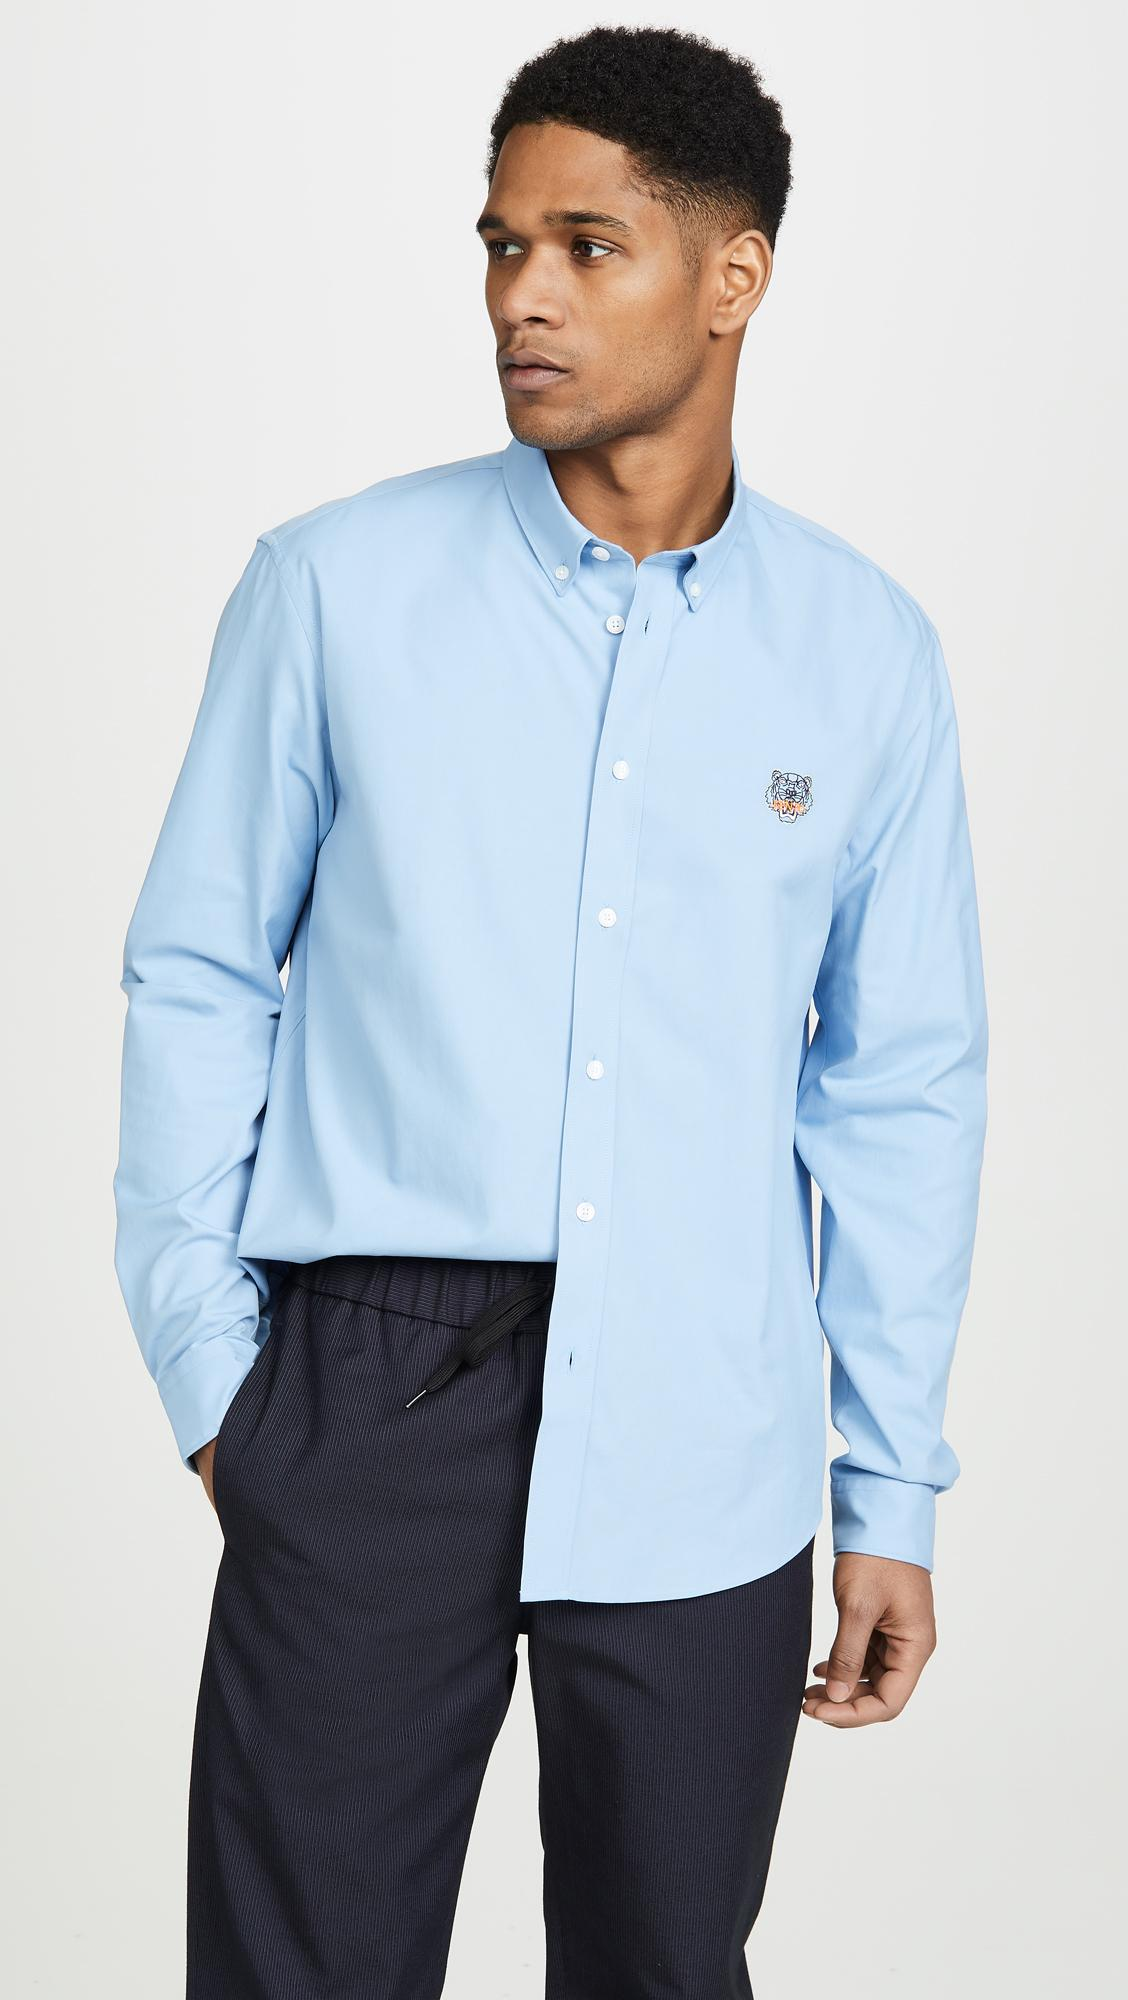 6609b7c8e Lyst - KENZO Tiger Crest Casual Fit Shirt in Blue for Men